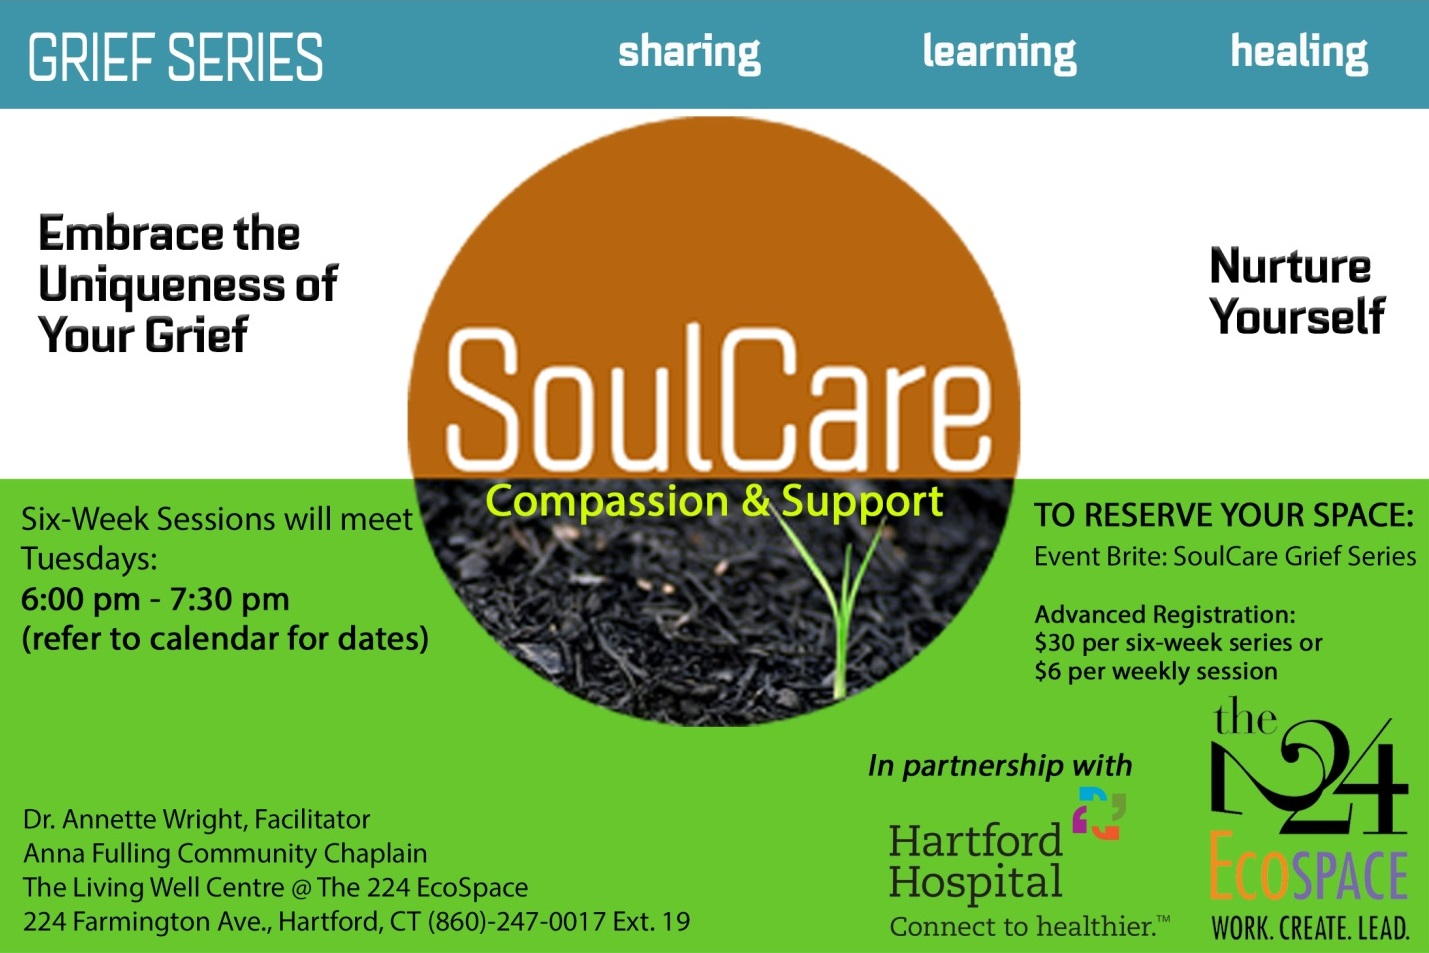 SoulCare Grief Series